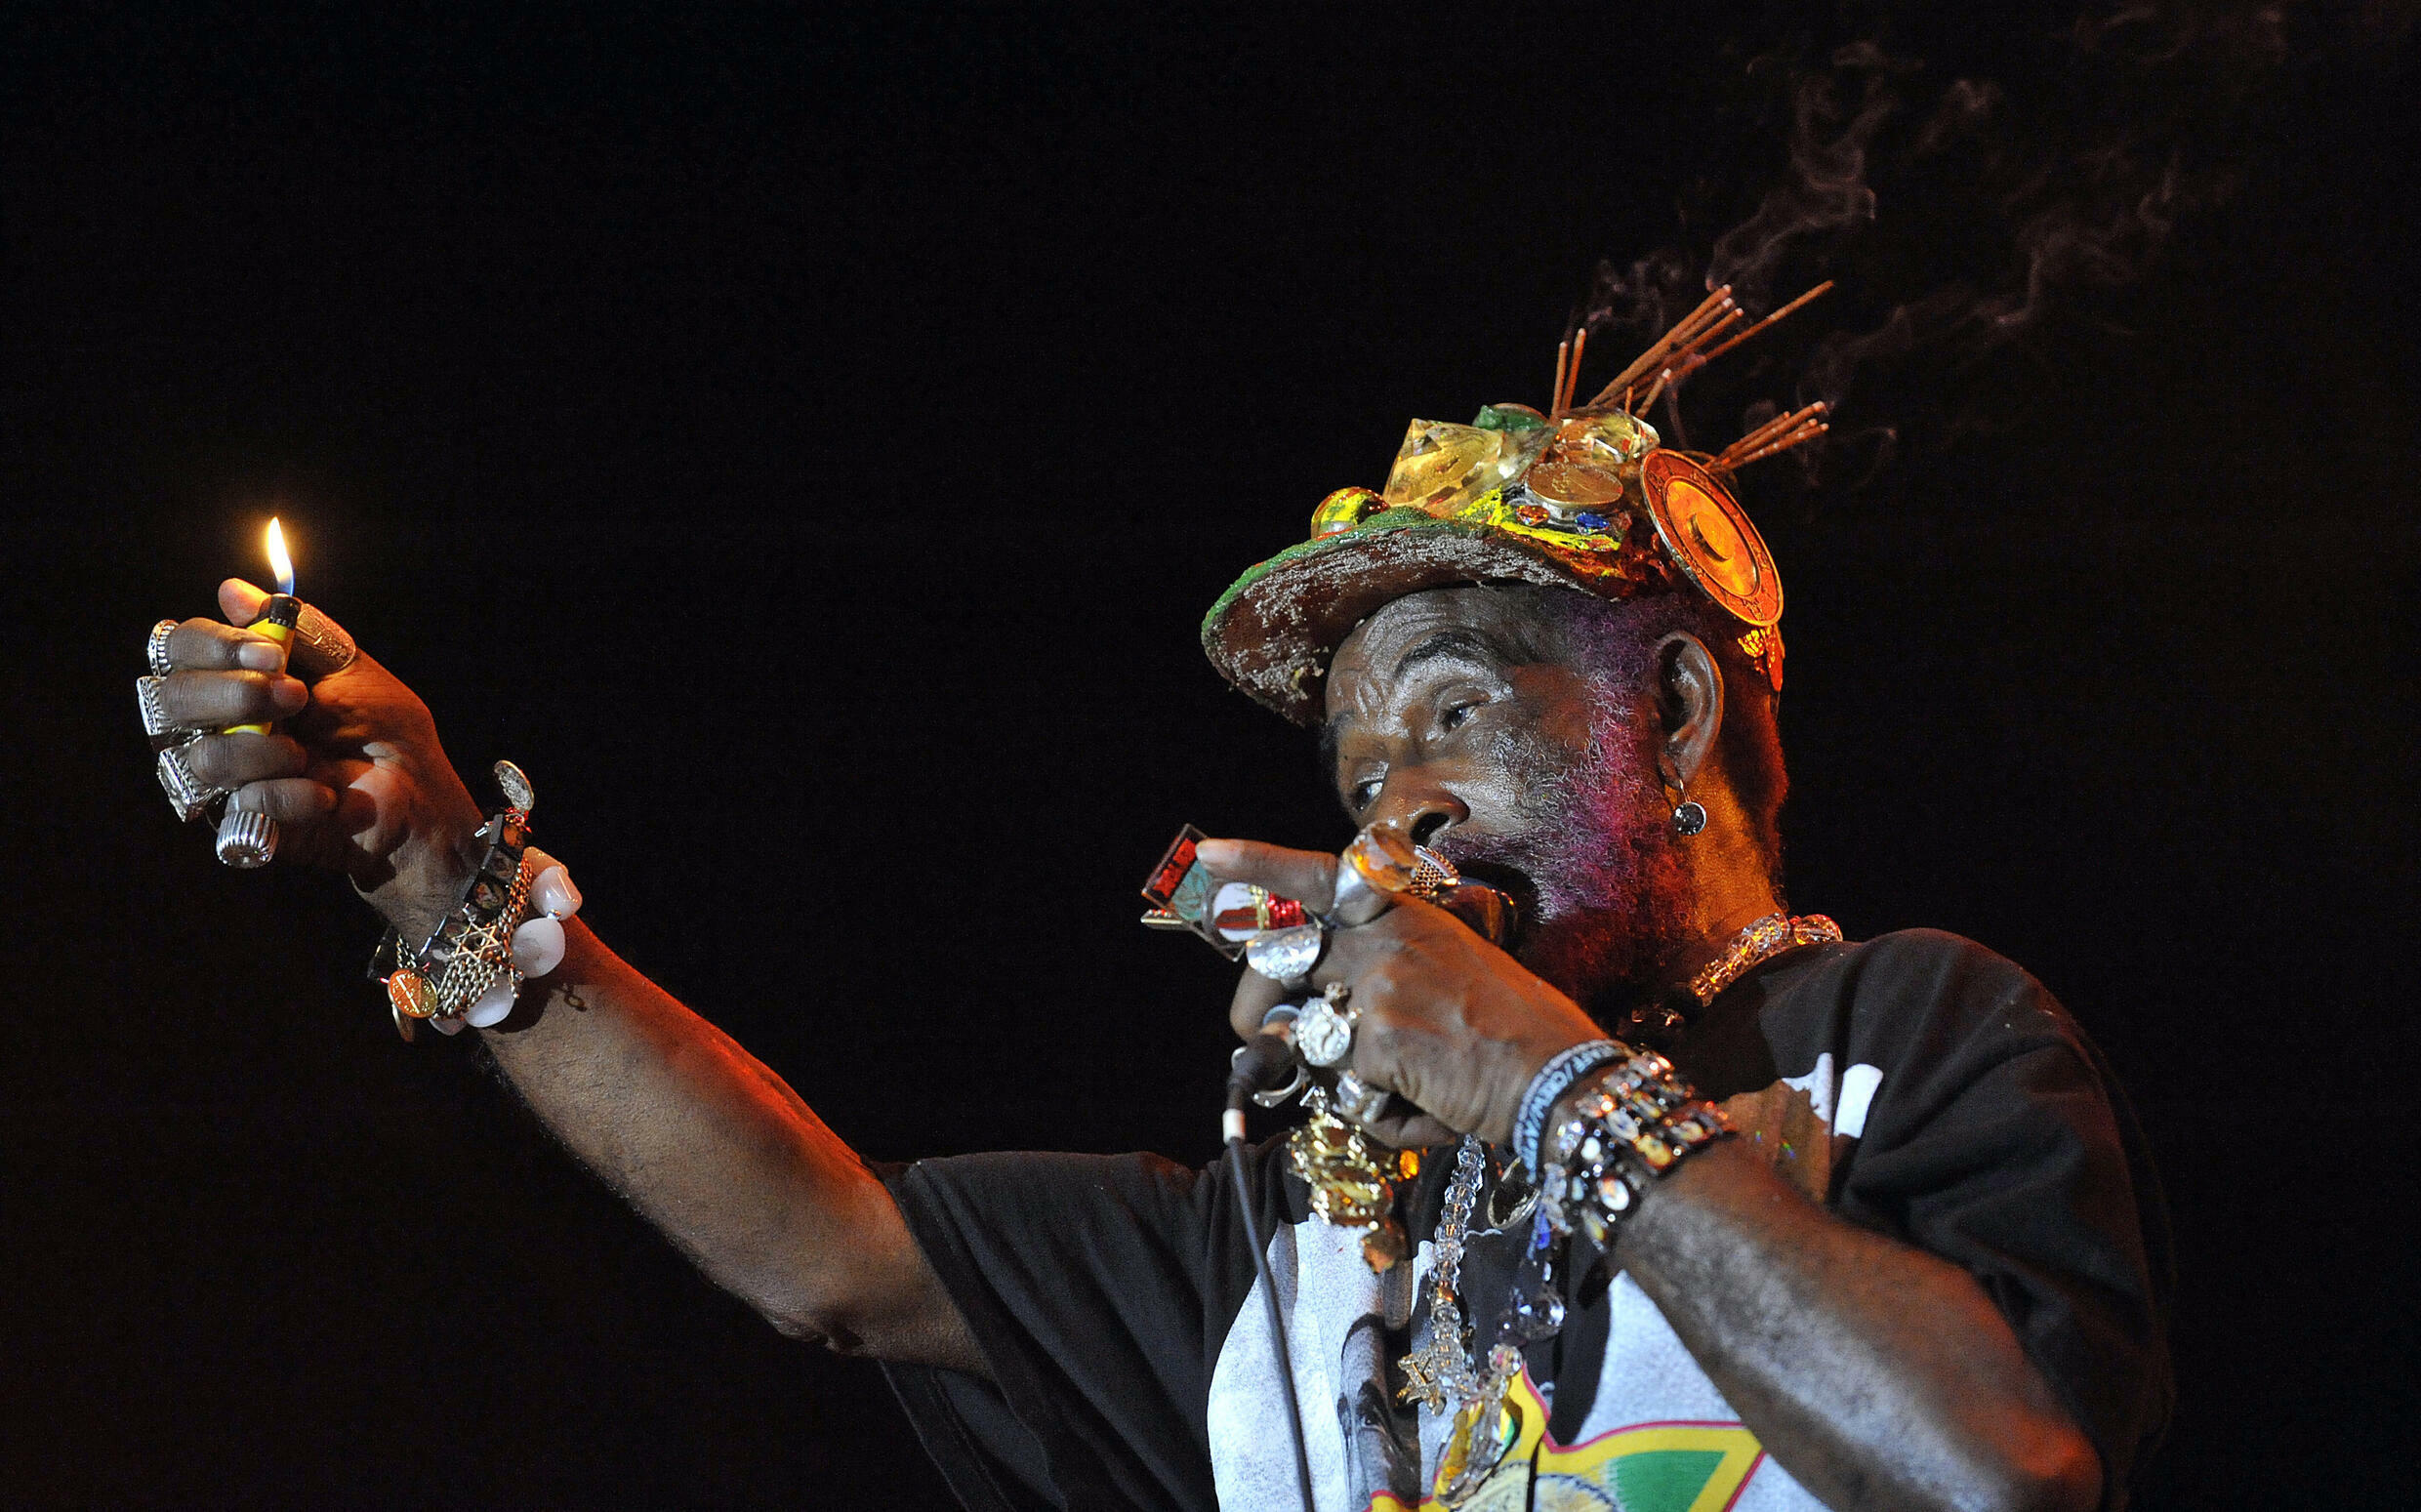 """Lee """"Scratch"""" Perry's layering techniques were the stuff of legend; he used stones, water, kitchen utensils to create surreal, often haunting, sonic density"""